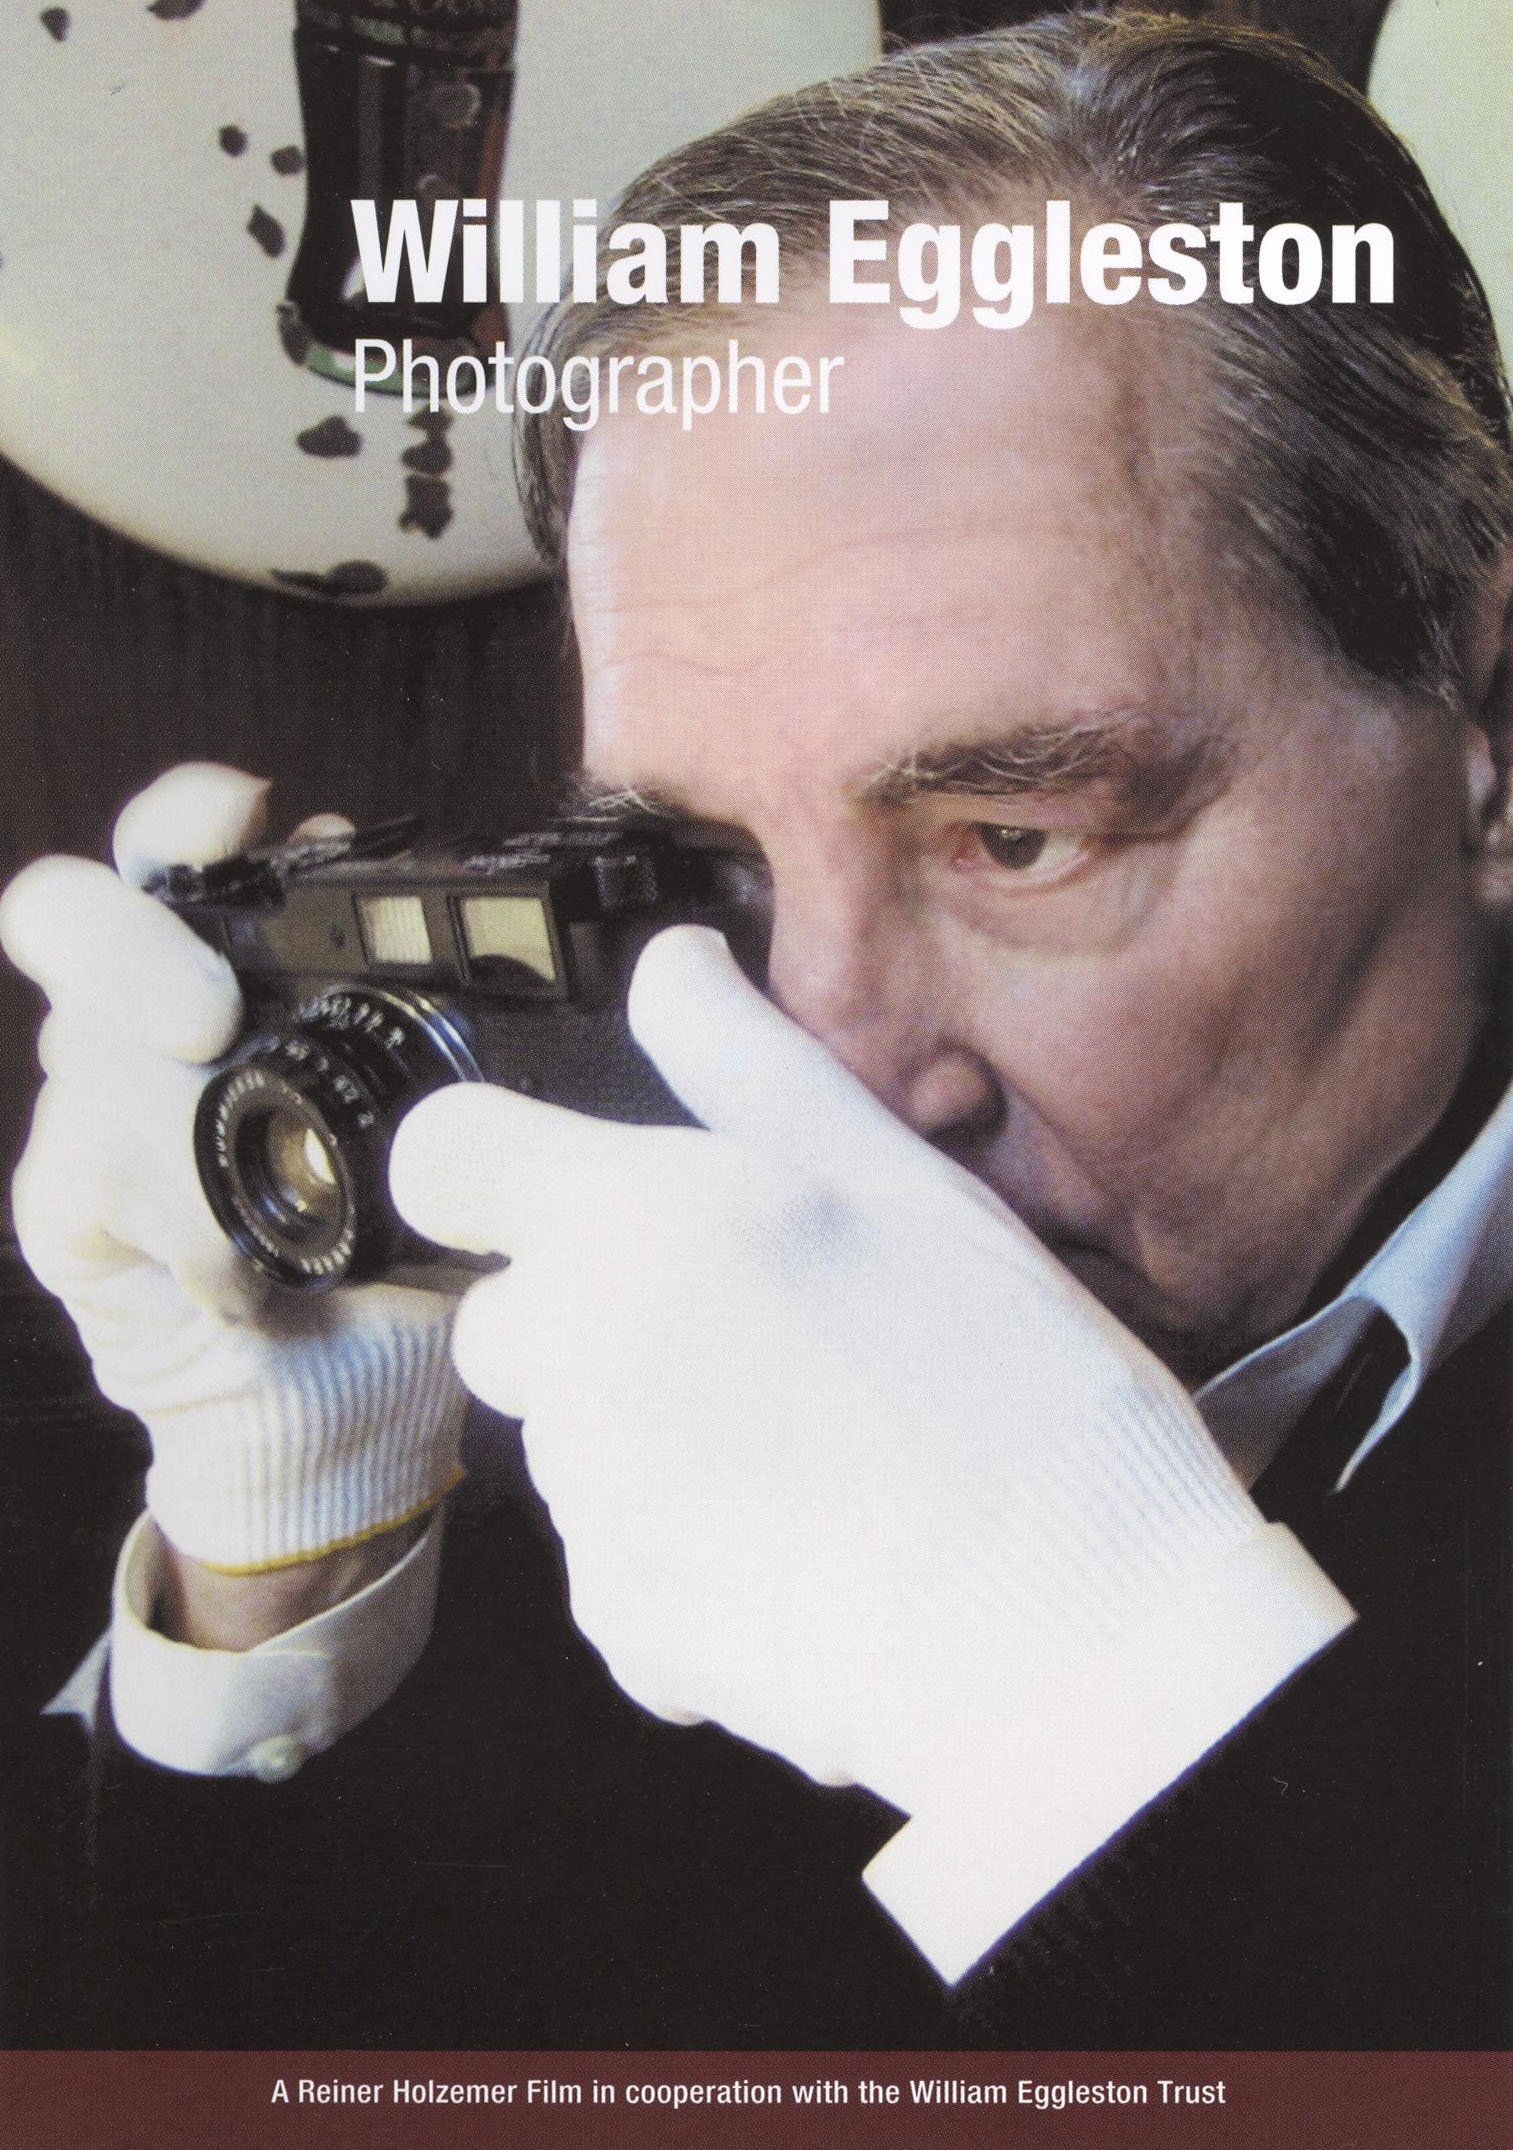 the life and work of william eggleston The photographer william eggleston first radicalized as they do with much of eggleston's work living a good life is central to understanding eggleston.